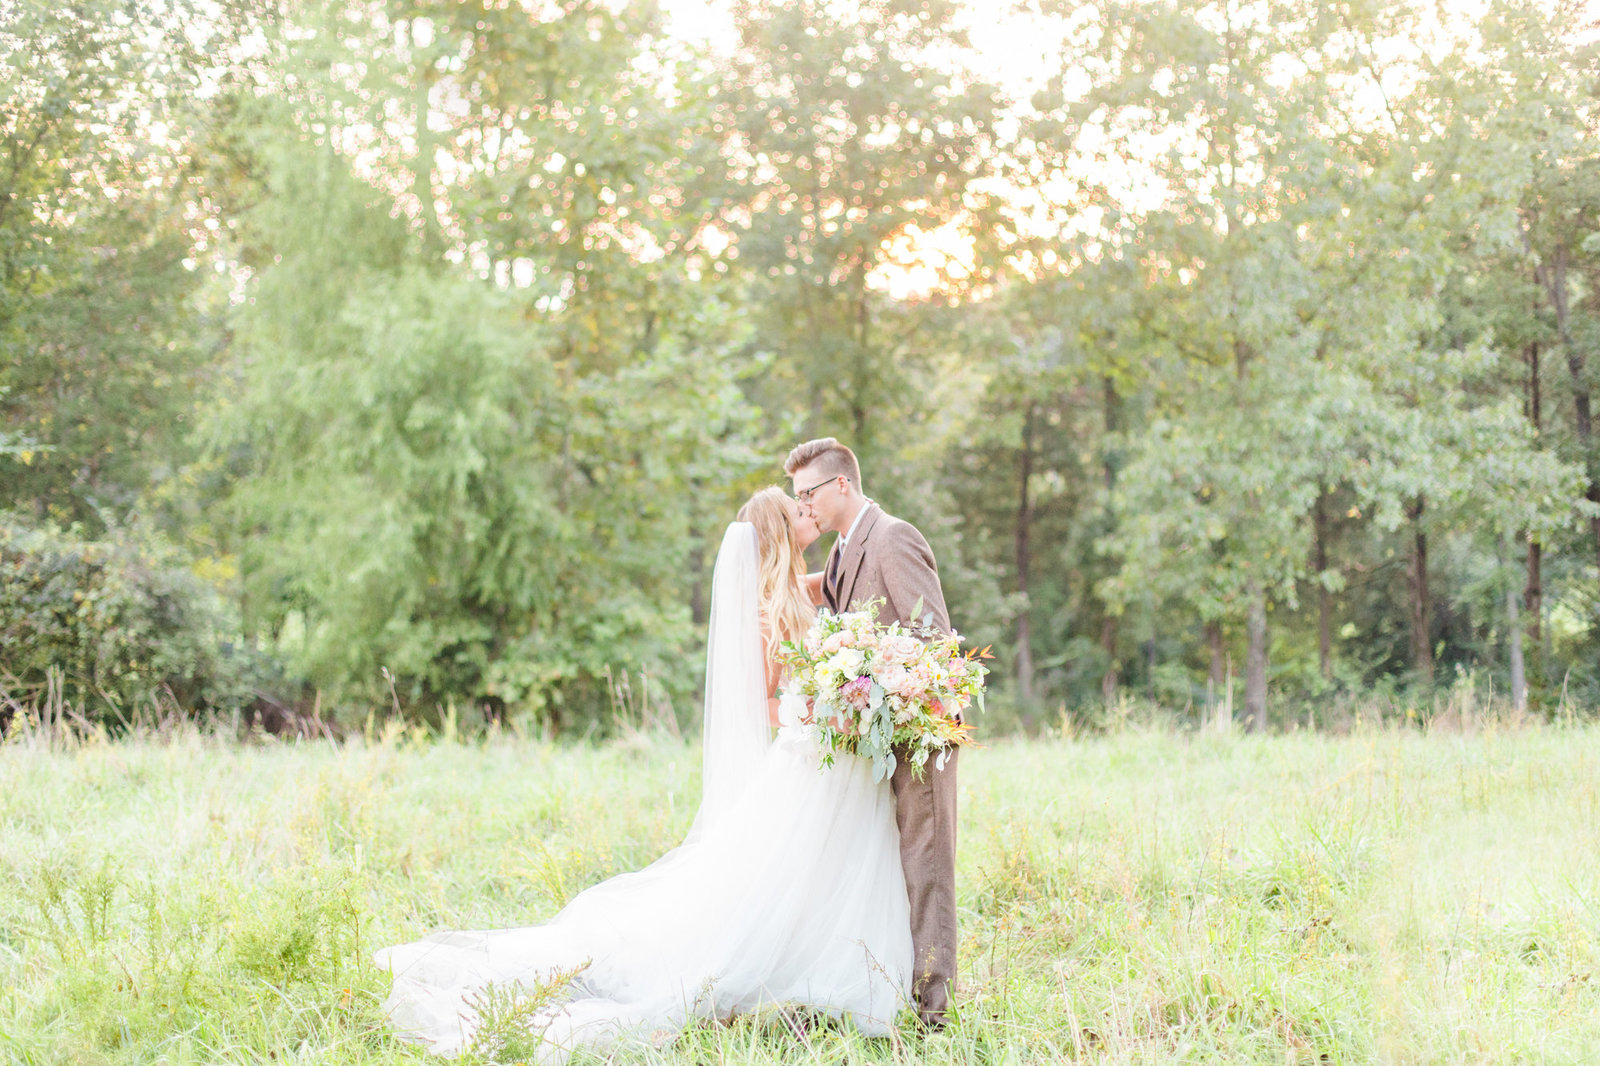 st-louis-wedding-photographer-haue-valley-weddings-barn-field-romantic-alton-belleville-129